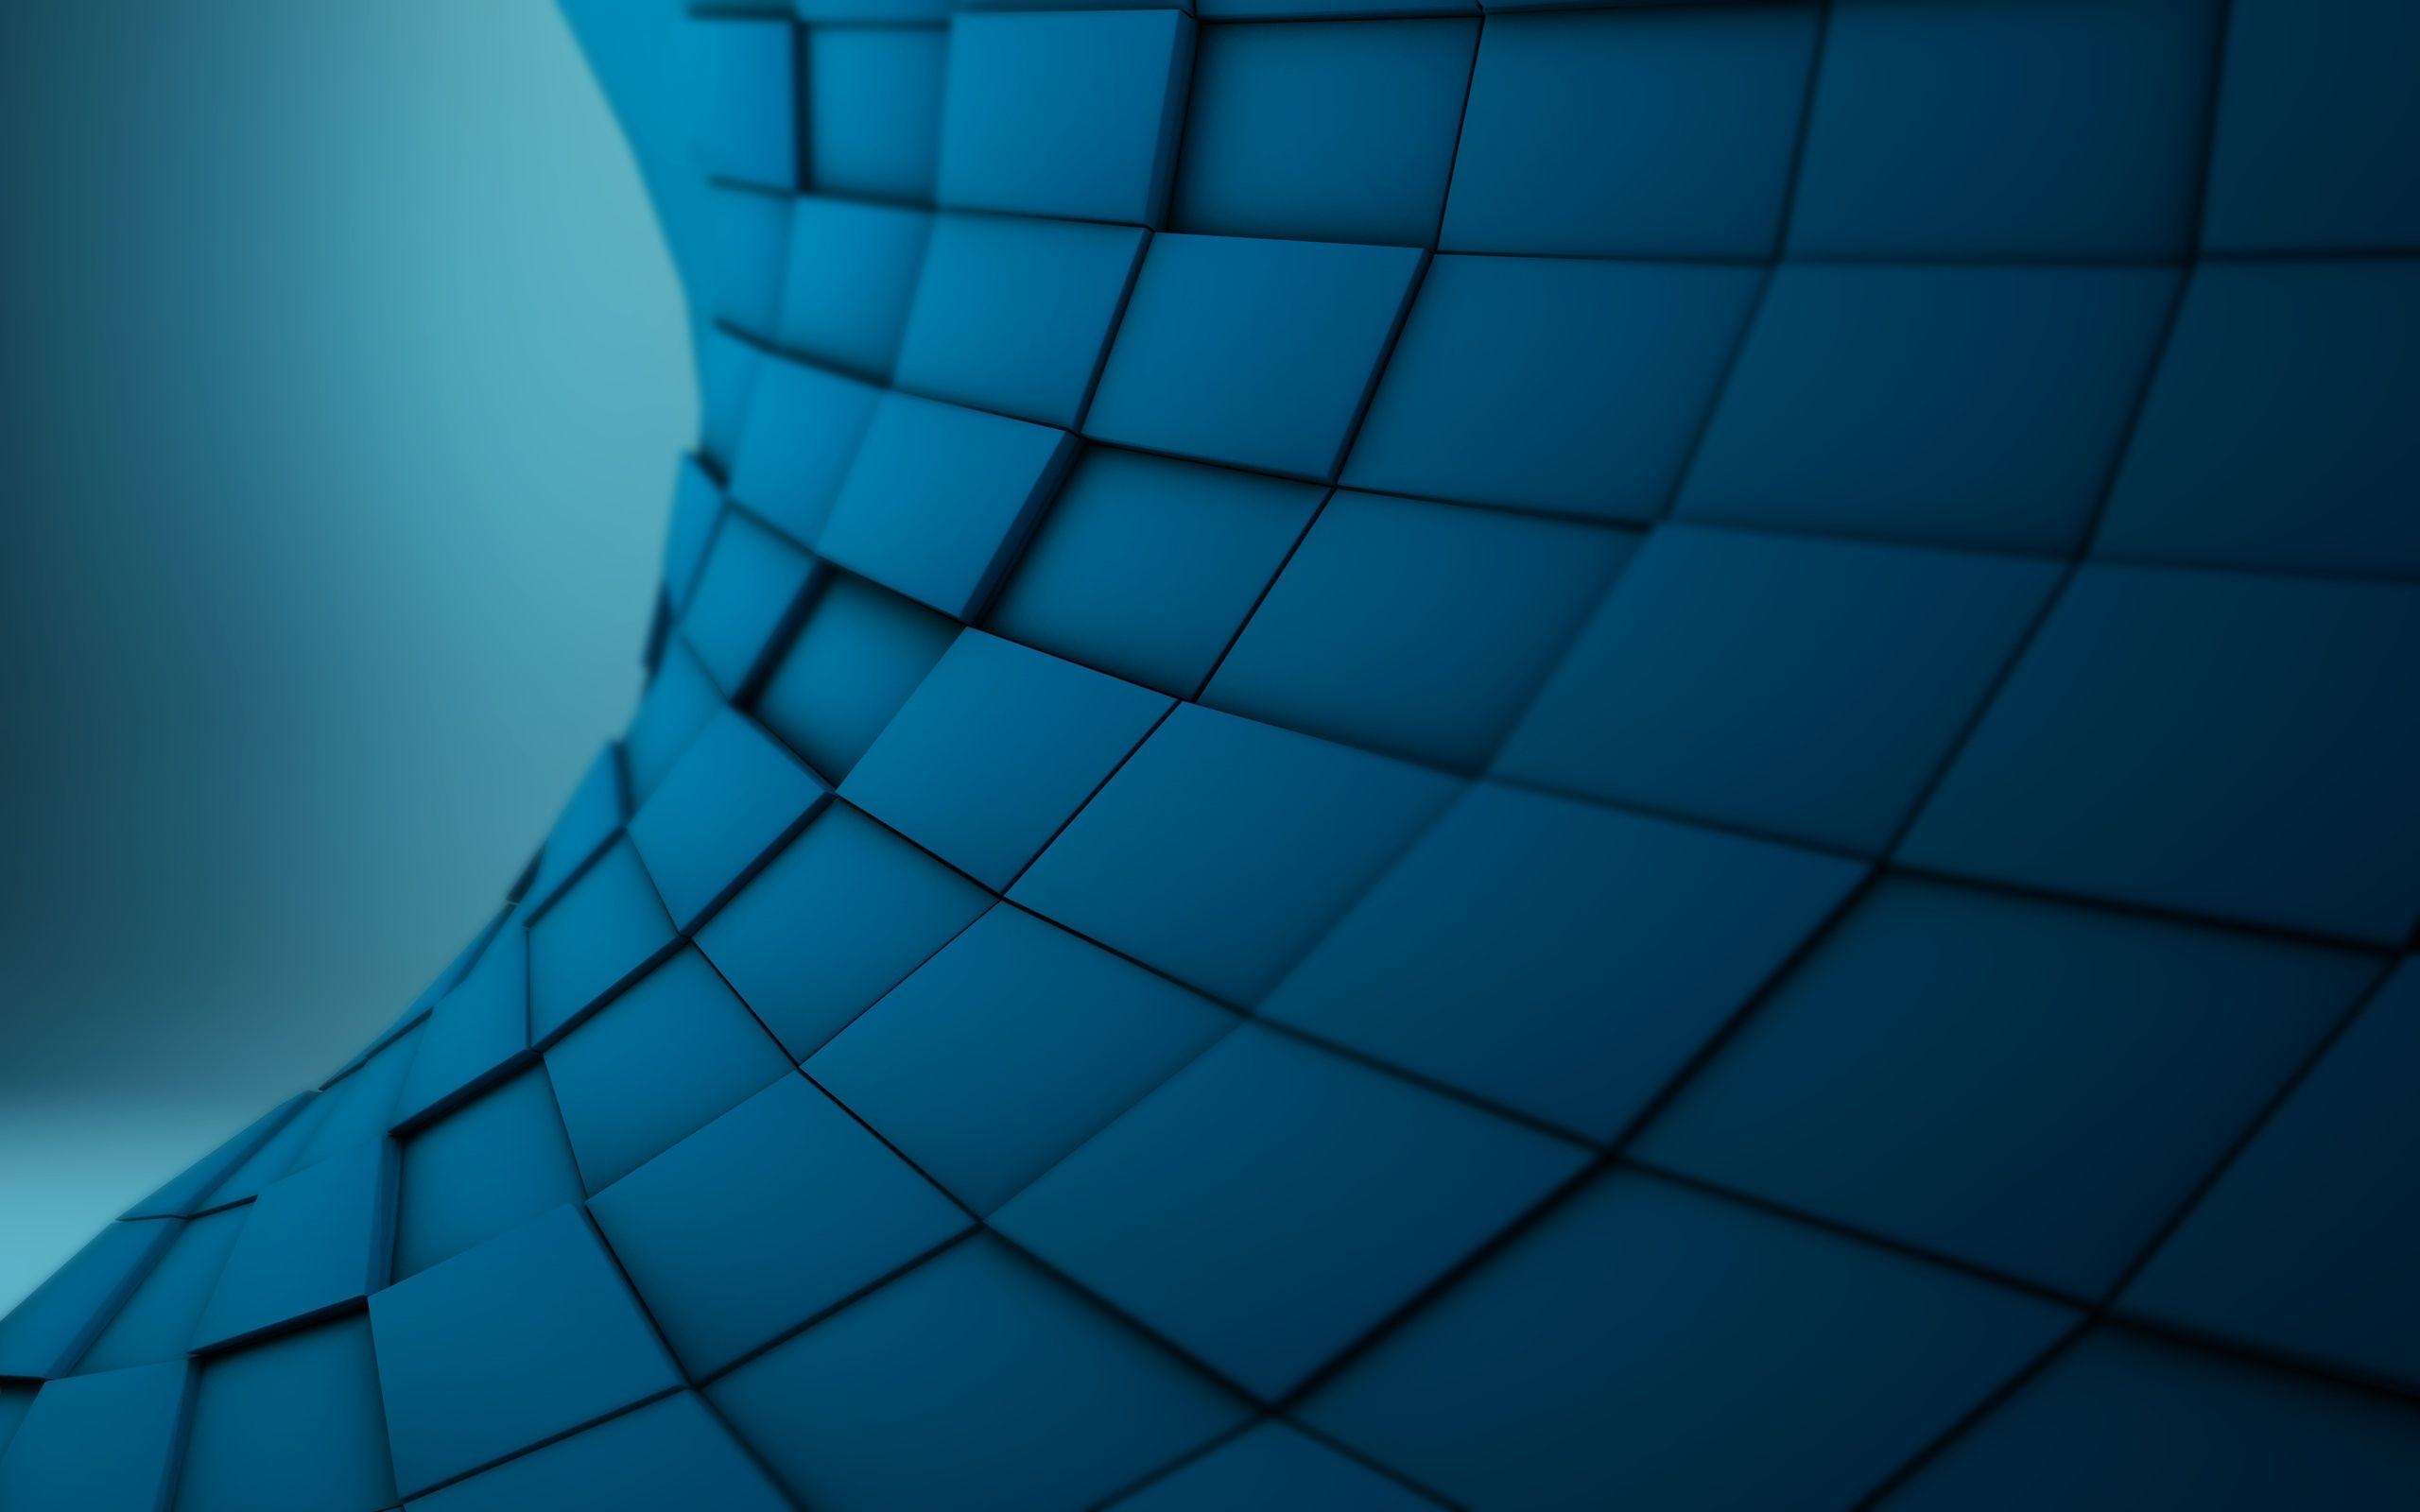 Block 3d Blue Abstract Wallpaper Cool Backgrounds Wallpapers Waves Wallpaper Blue Background Wallpapers